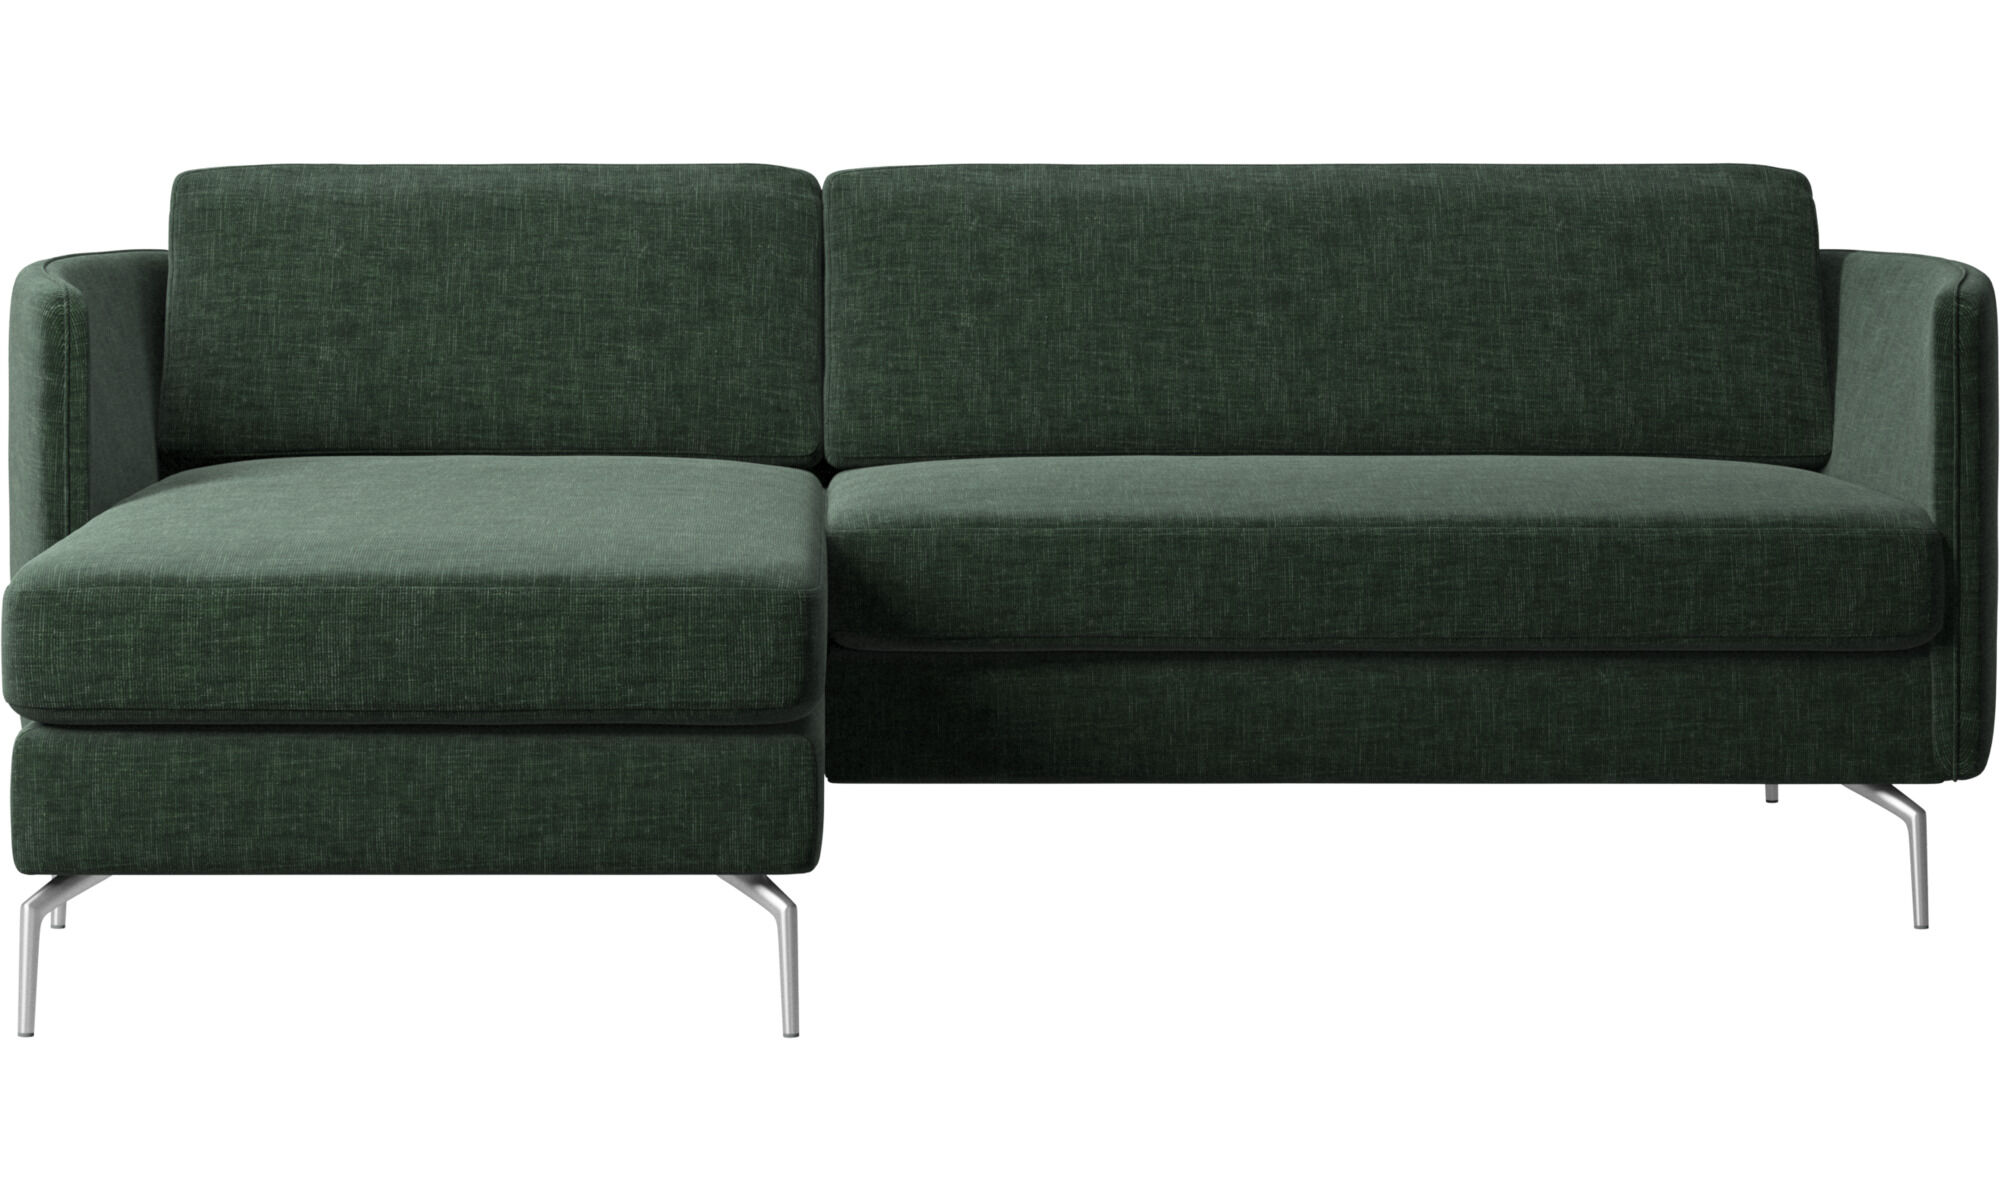 Chaise Longue Sofas   Osaka Sofa With Resting Unit, Regular Seat   Green    Fabric